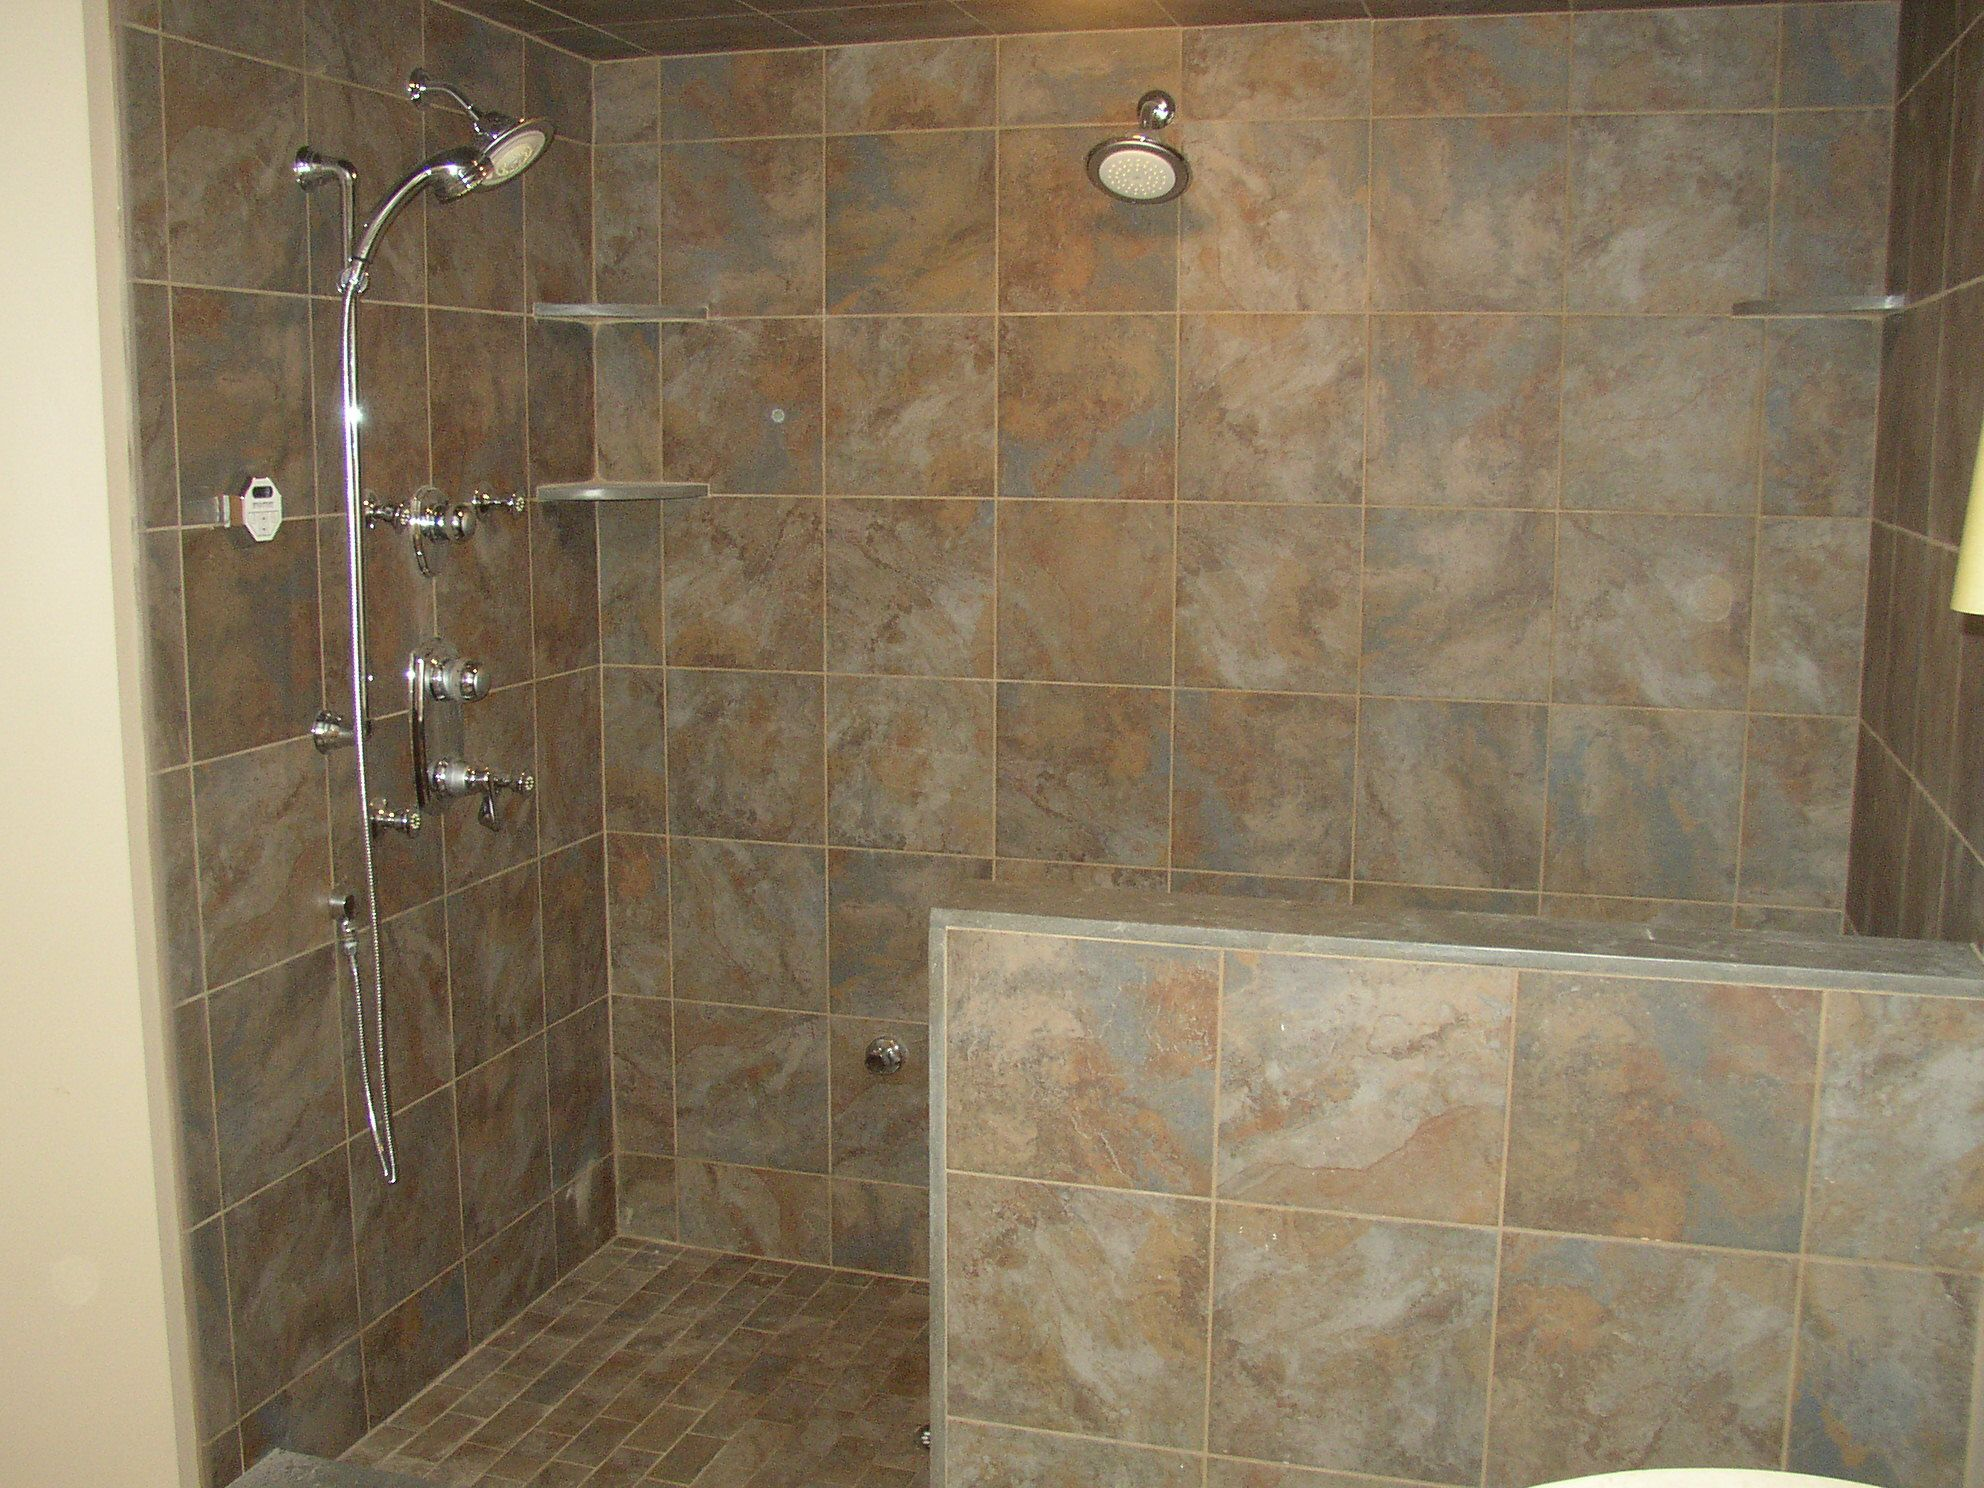 flooring ceramic tile is the popular choice consider adding an electric under floor